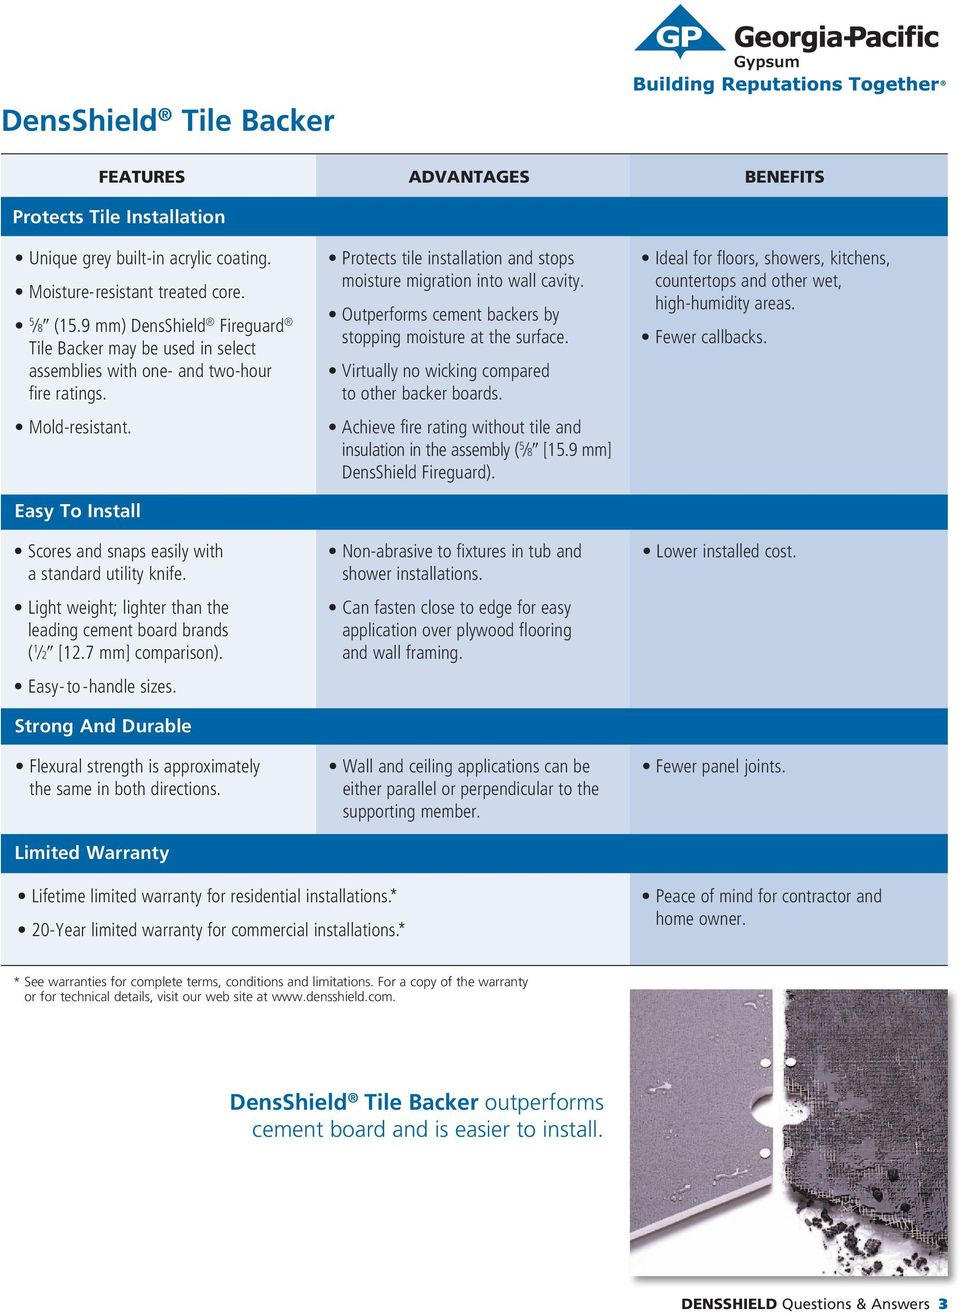 Questions & Answers. DENSSHIELD Questions & Answers - PDF